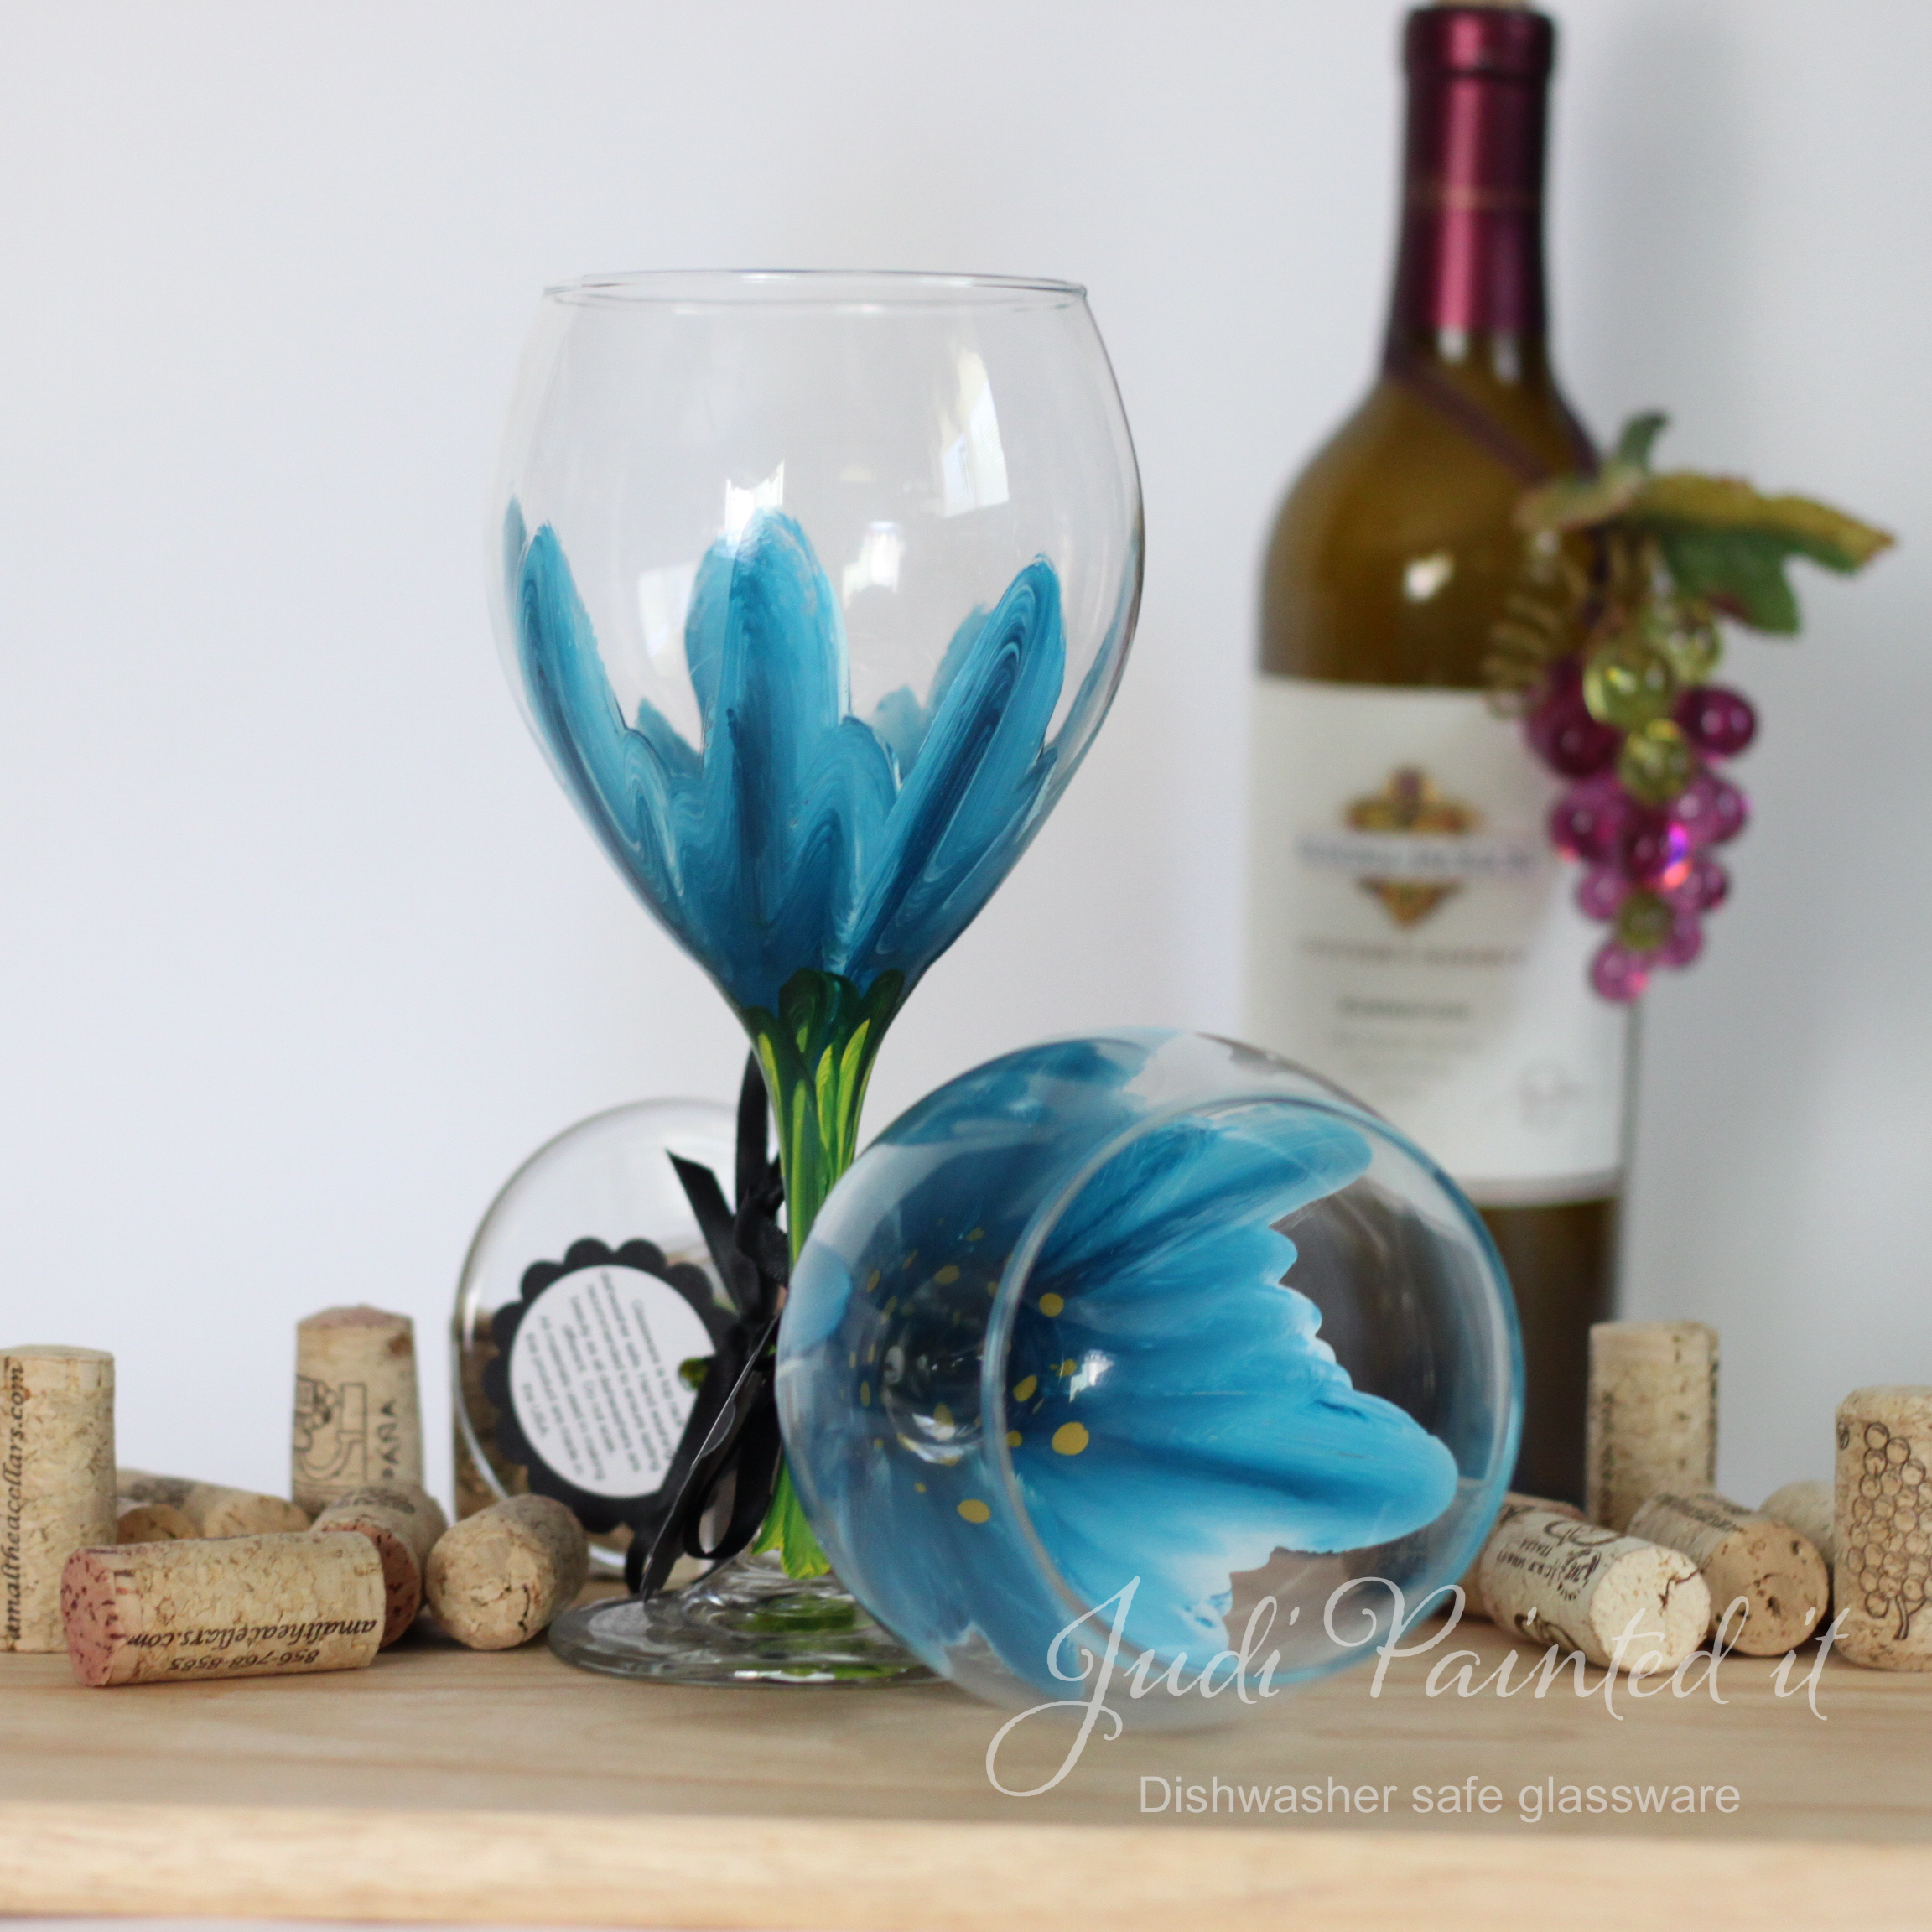 Uncategorized Dishwasher Safe Paint For Glass wild flower painted wine glass in cerulean blue that is dishwasher safe